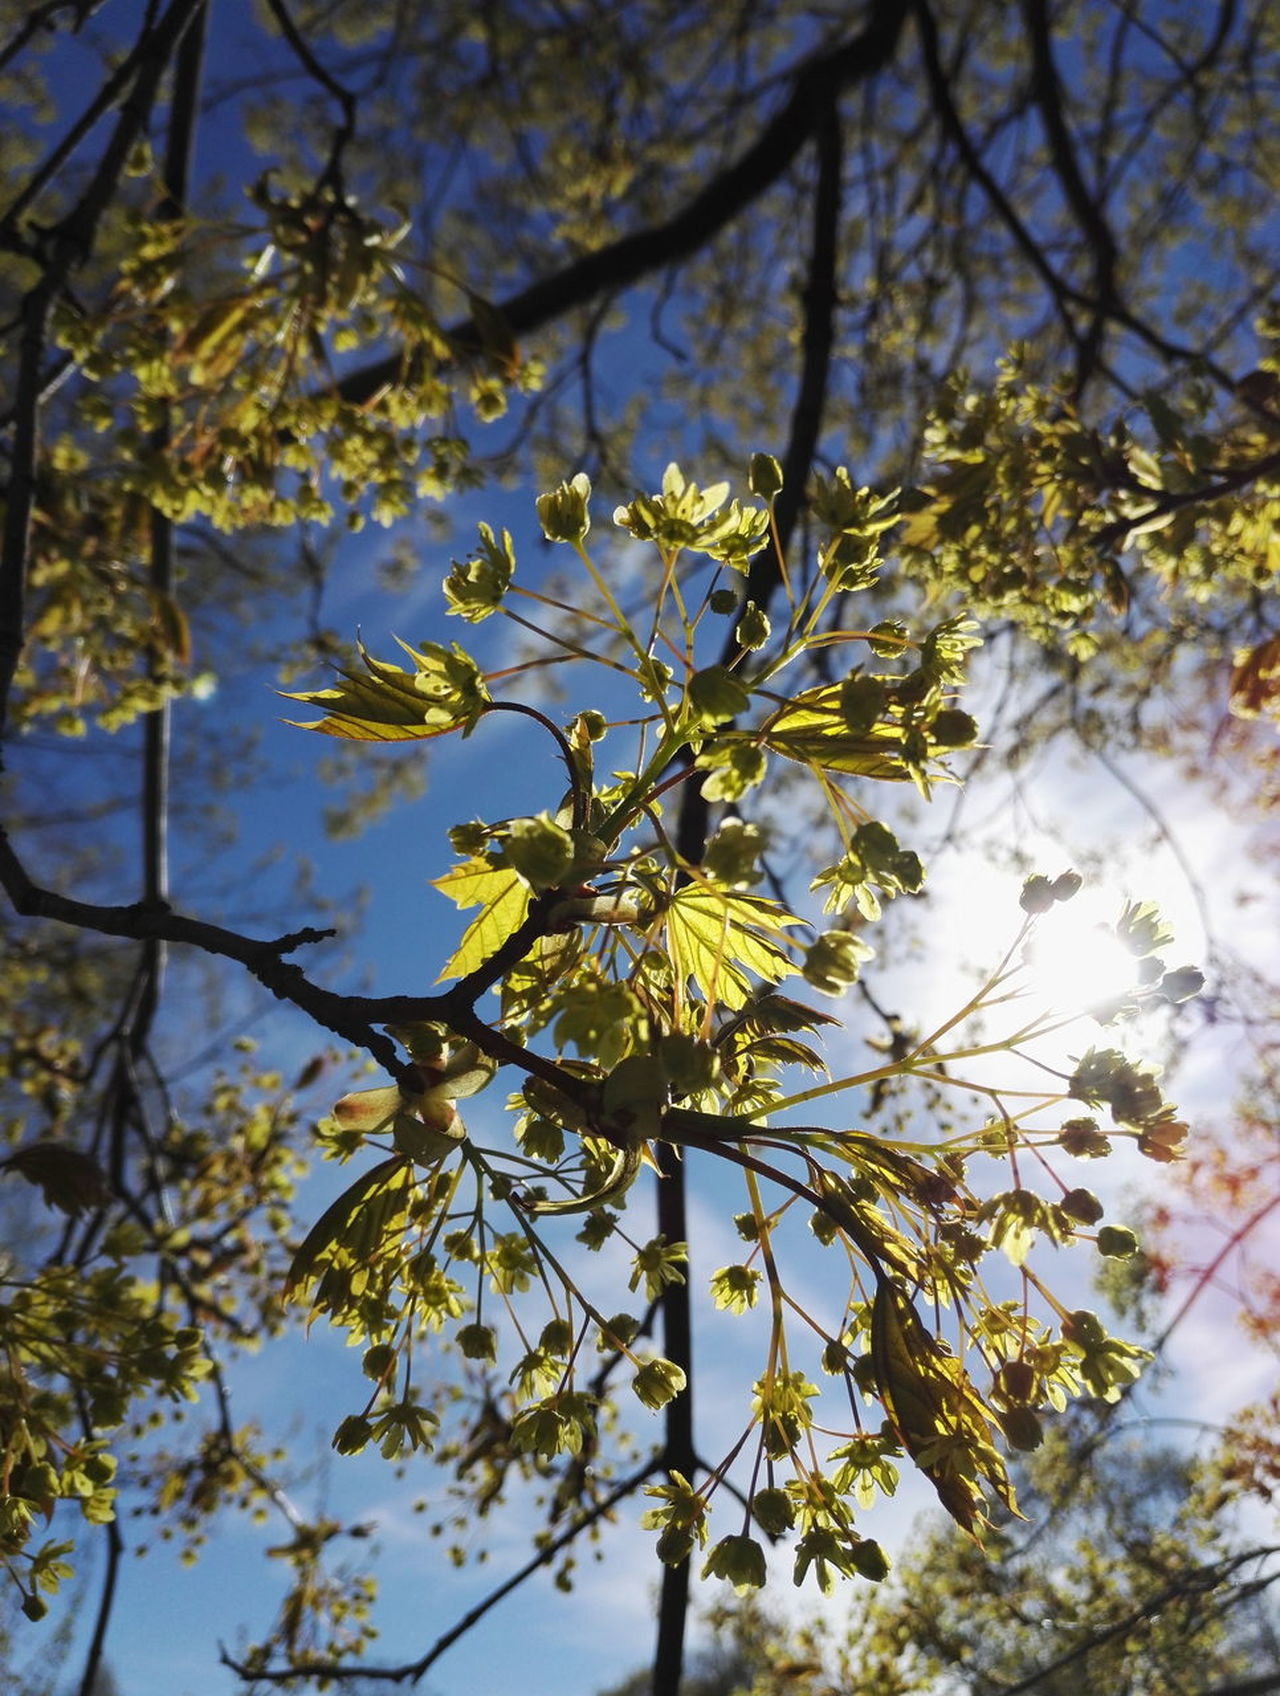 Tree Nature Beauty In Nature Low Angle View Day Outdoors Leaf Springtime Sky Fragility Freshness Close-up Sunlight